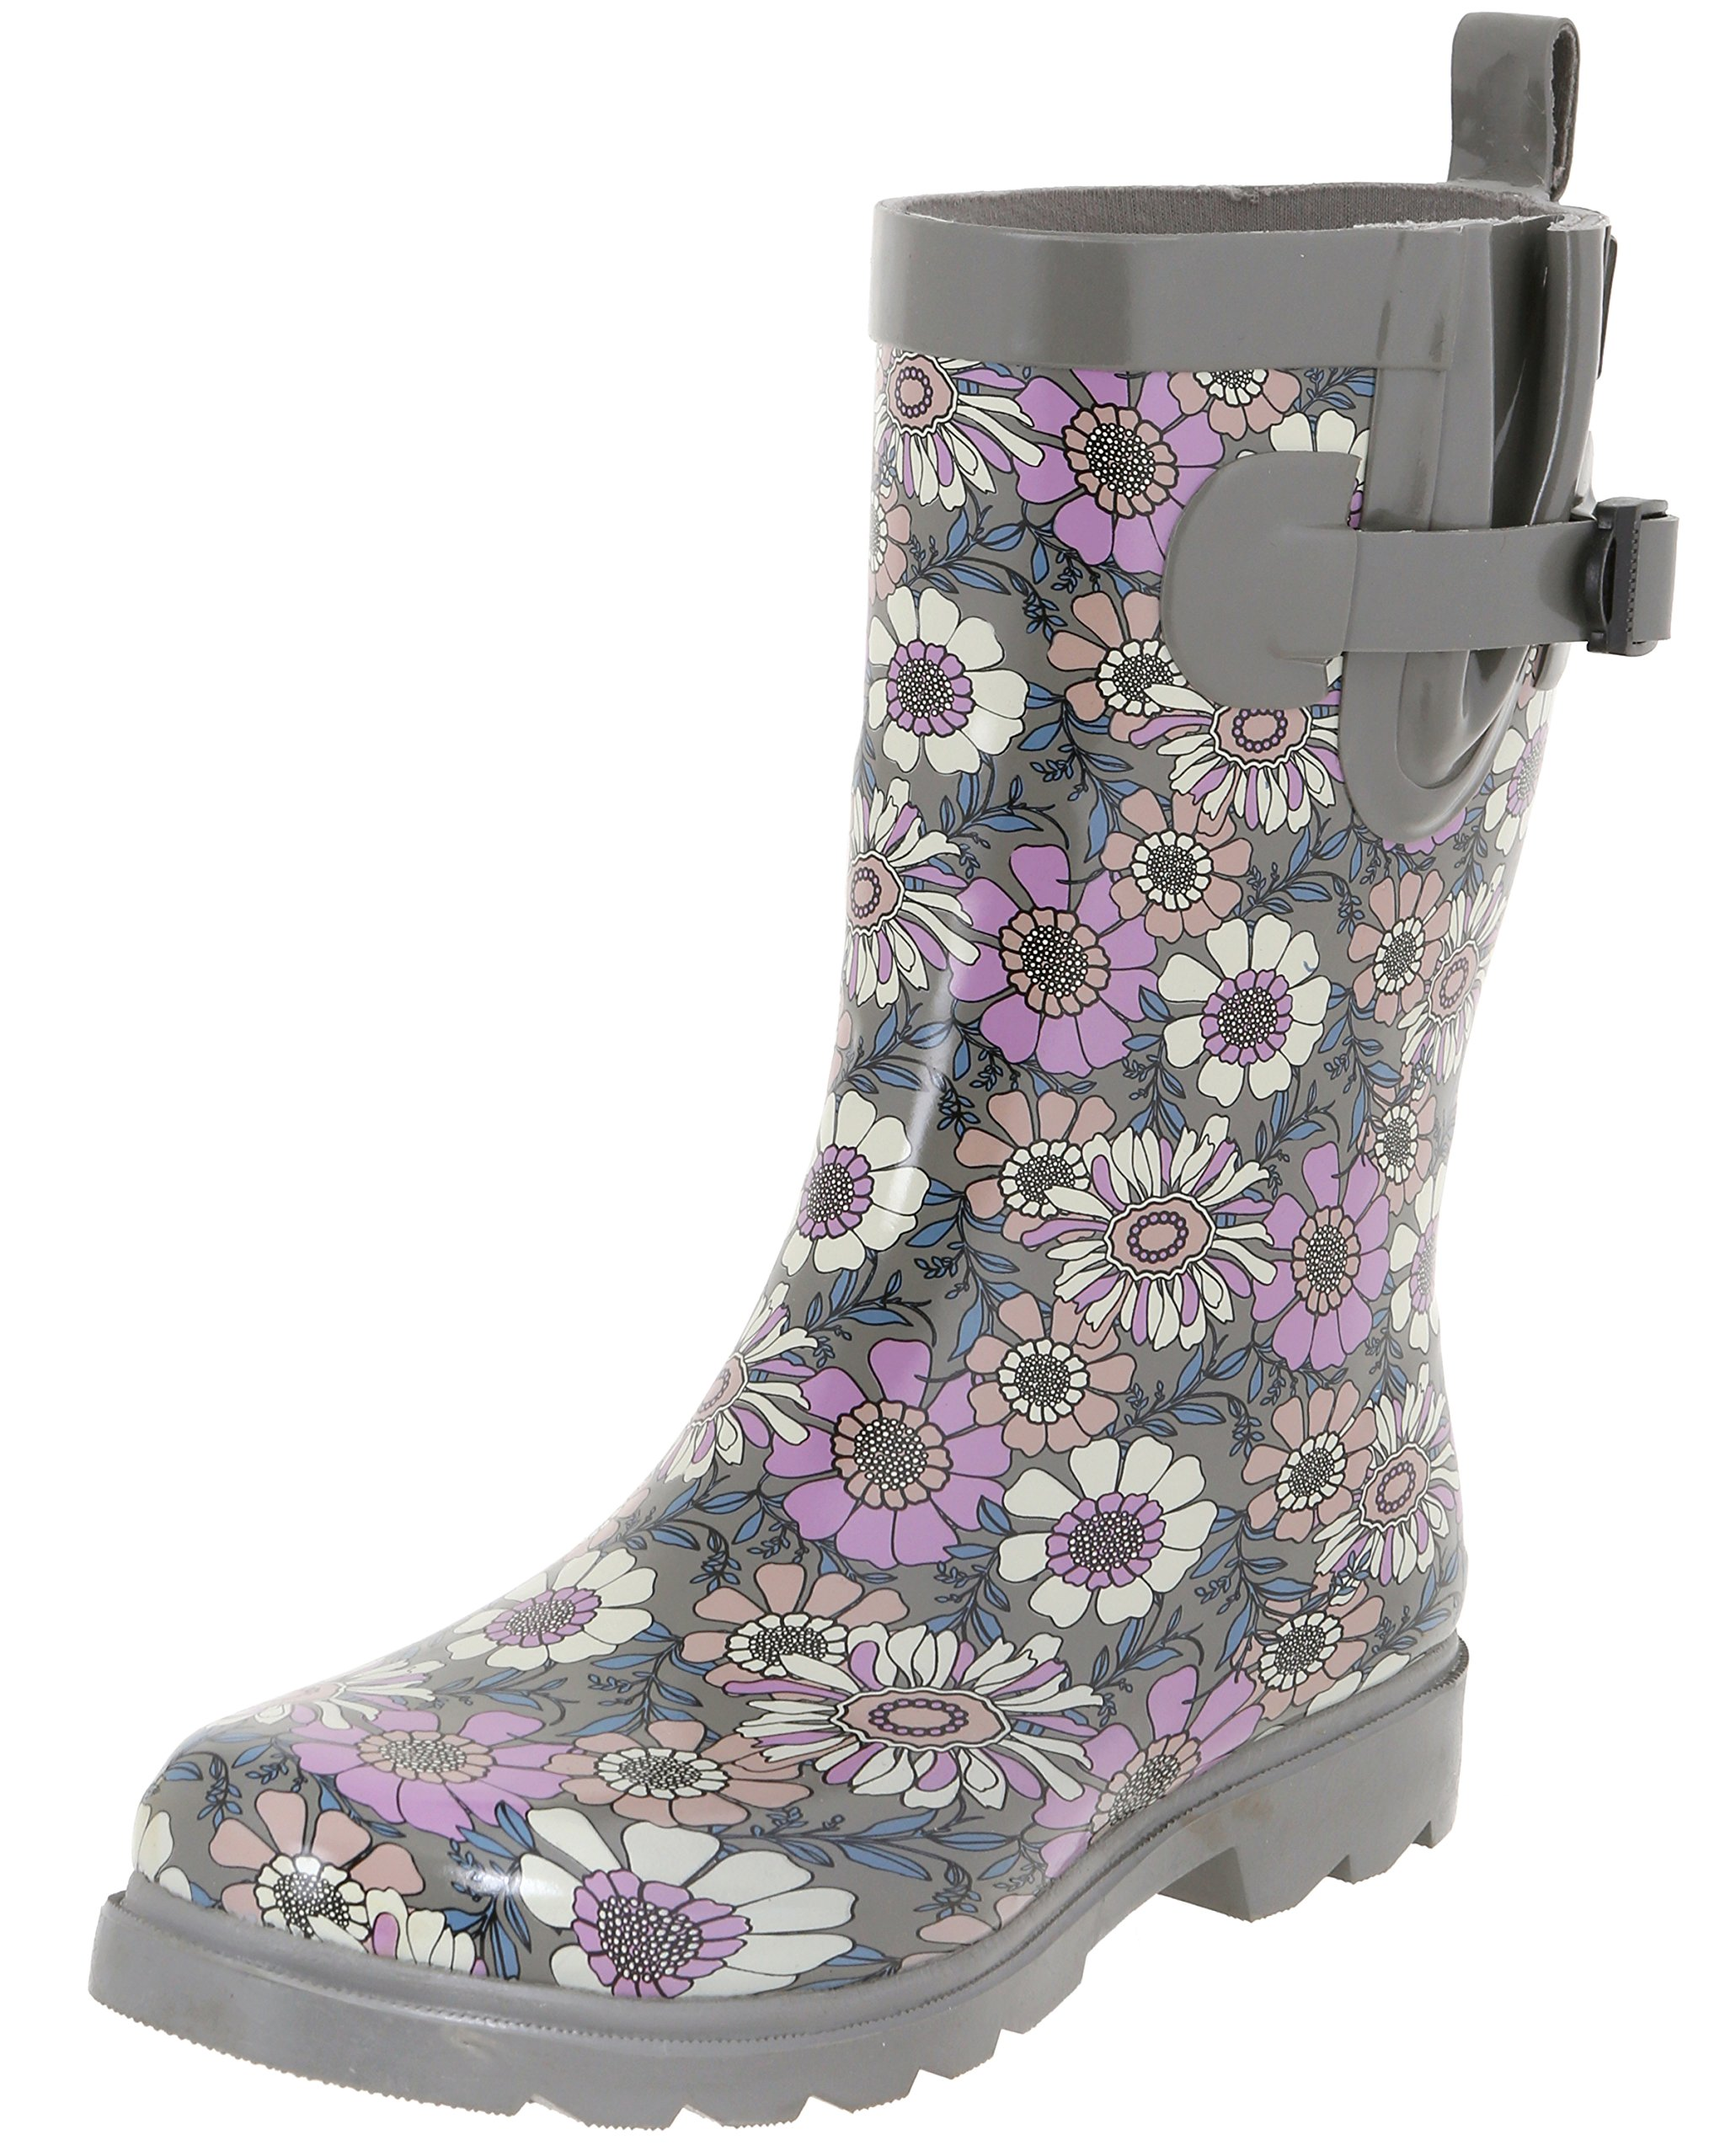 Capelli New York Ladies Dark Floral Printed Rain Boots Grey Combo 9